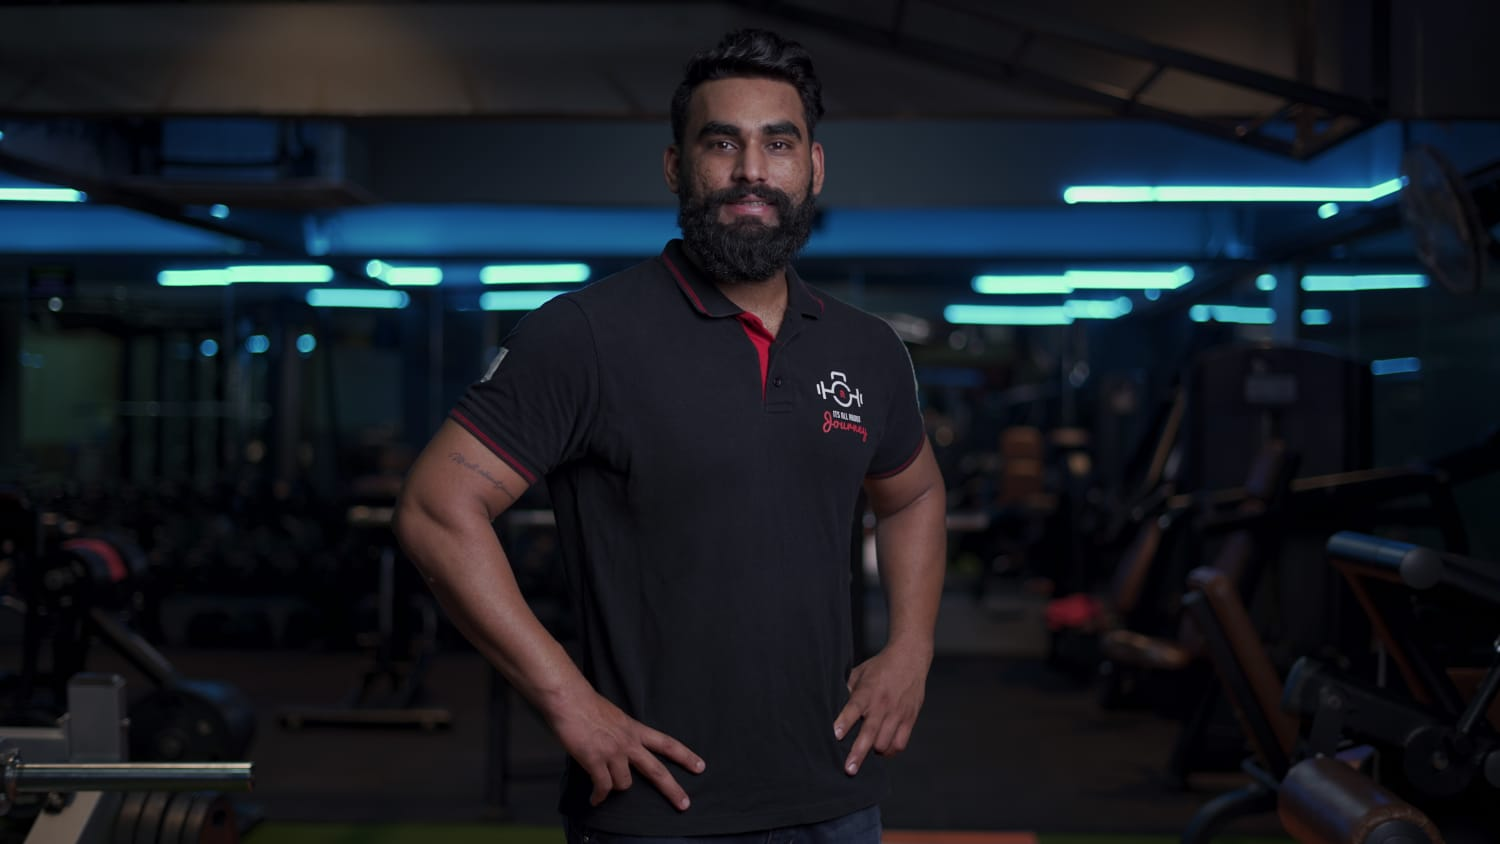 Coach Rutvik Chavhan - An Emerging Name in Fitness Industry Growing High With 'Its All About Journey'